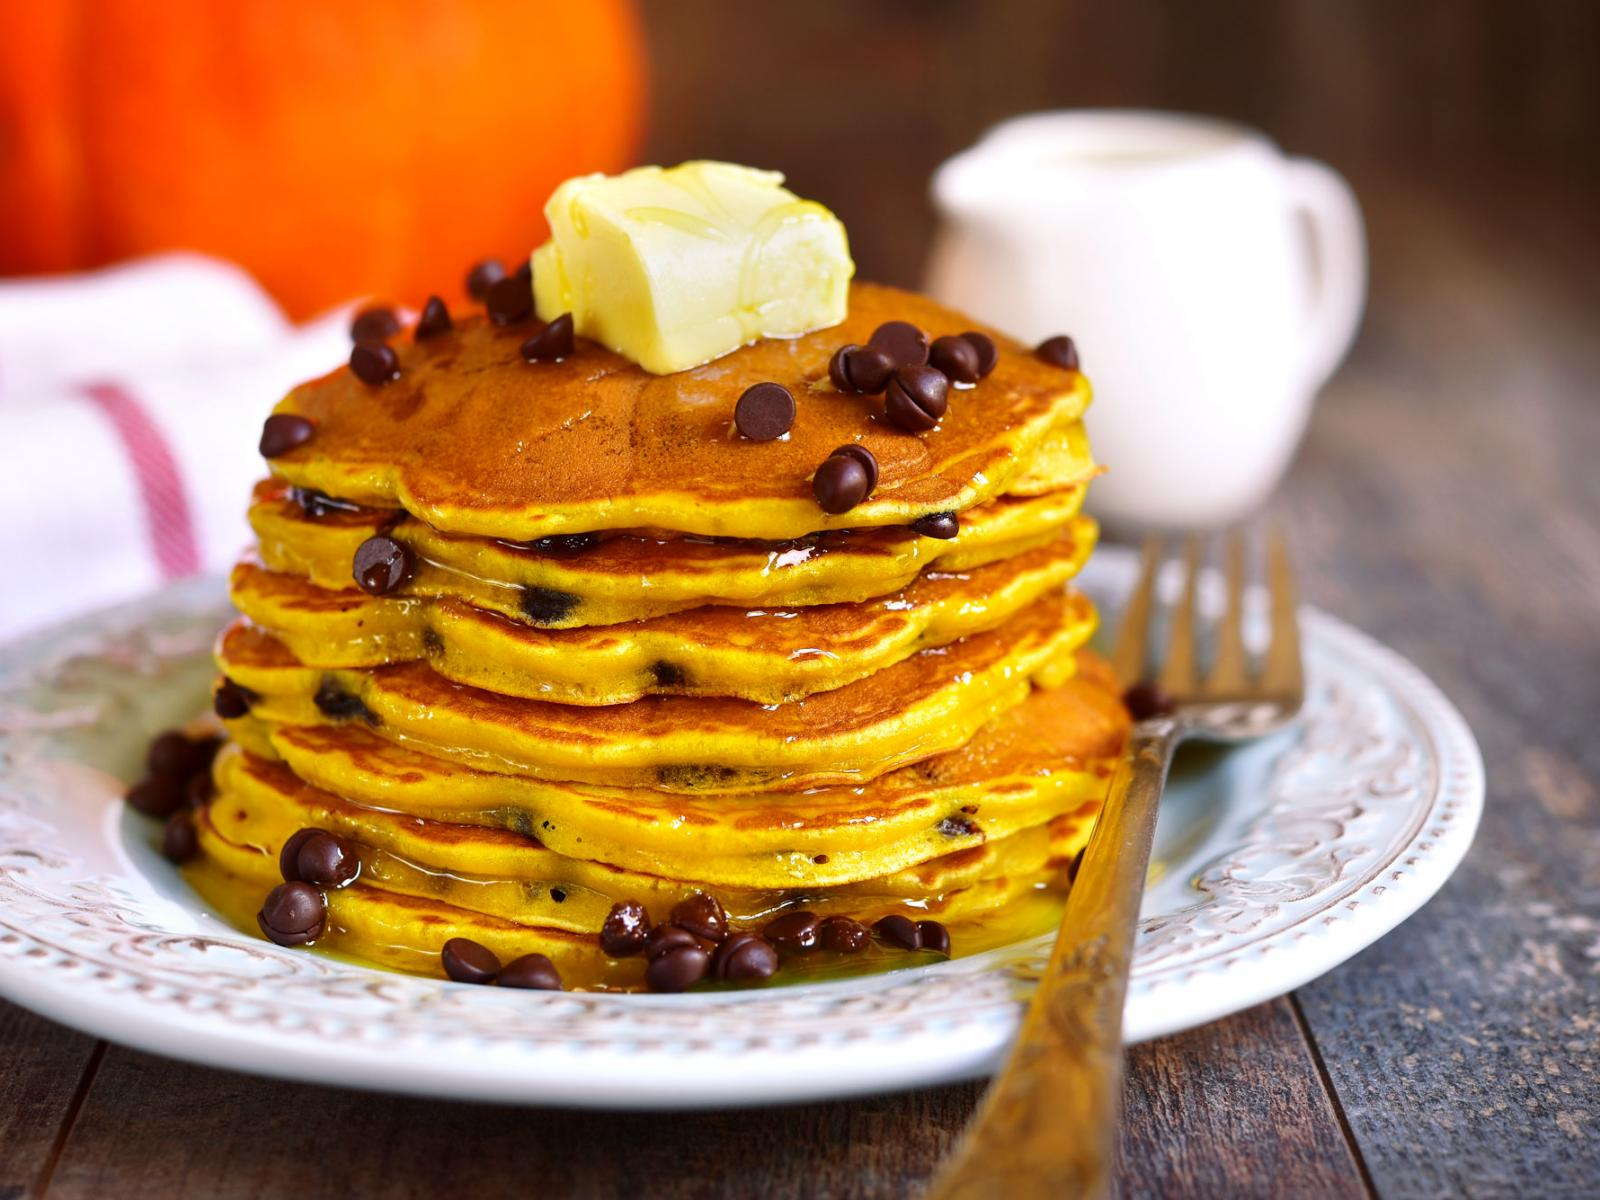 Farmers Egg Nog Christmas Day Orange-Chocolate Chip Pancakes Recipe